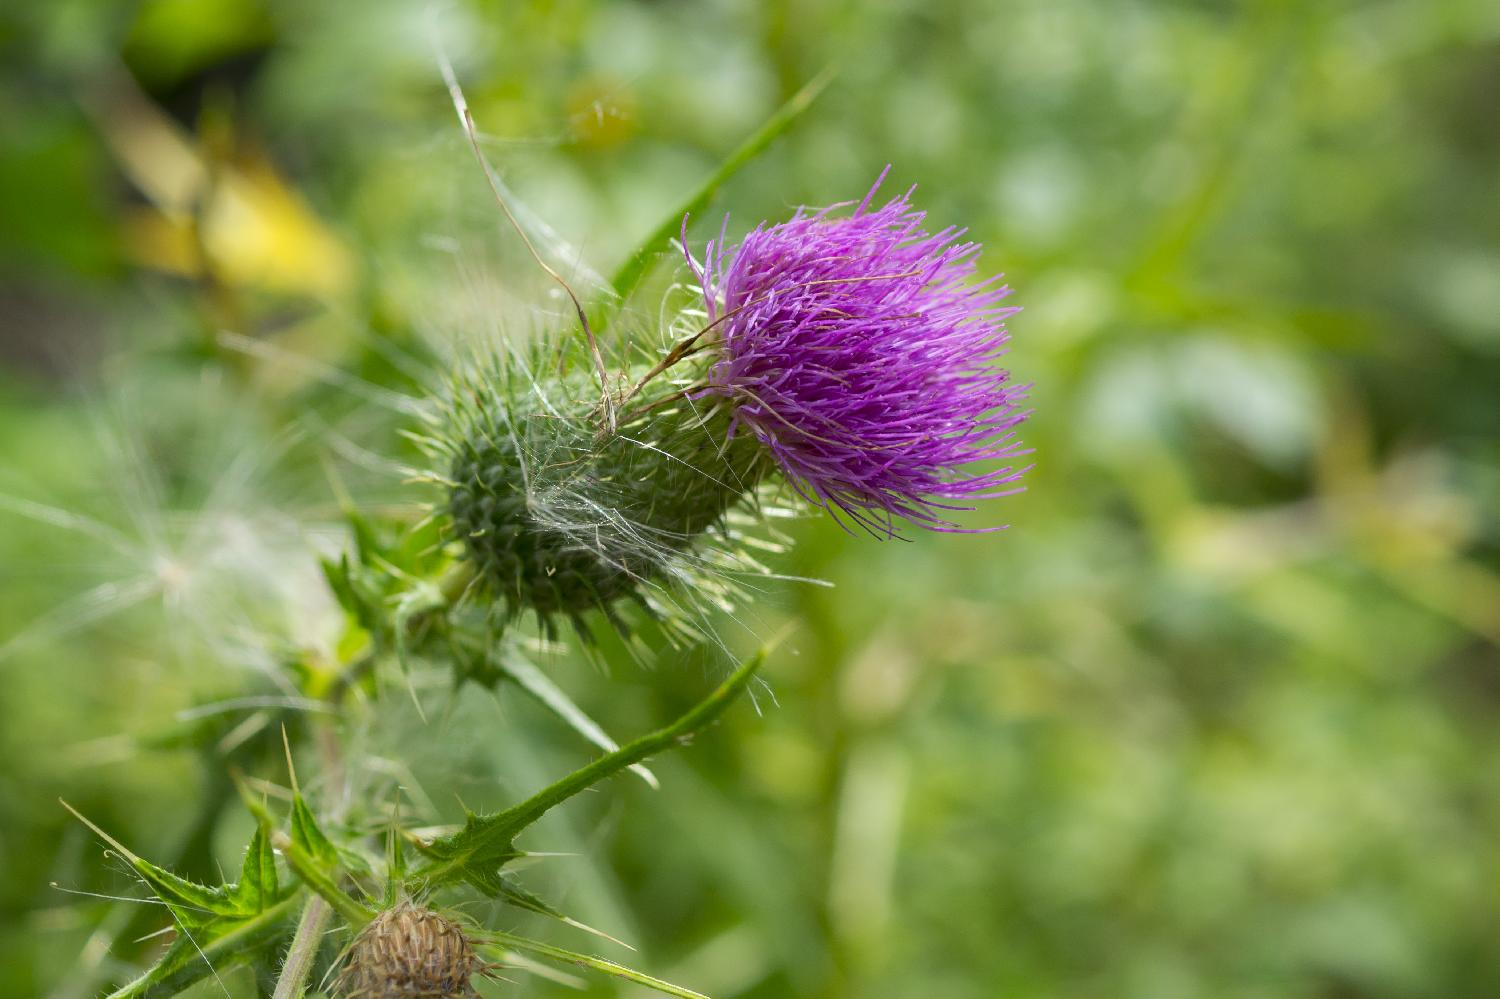 Photo of a Field Thistle, also known as the species Cirsium discolor.  Taken in a forest in Barrie, Ontario, Canada